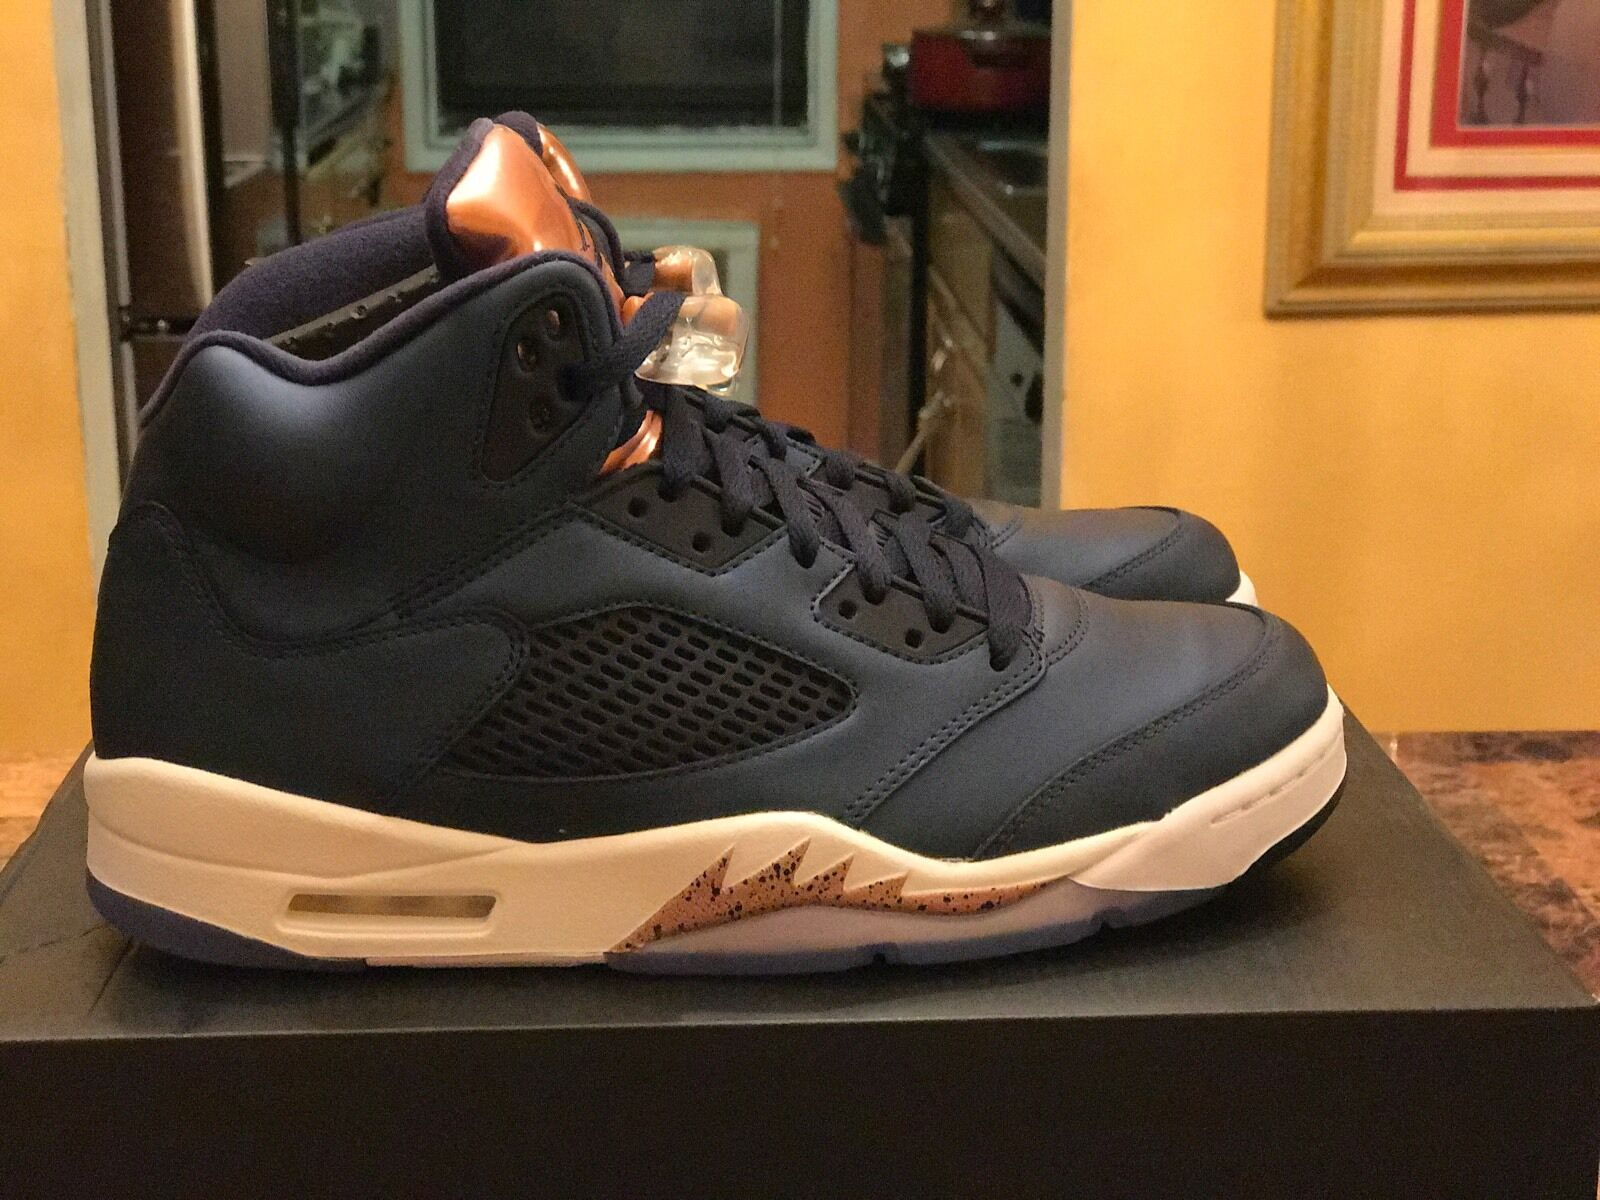 Air Jordan 5 Retro Bronze Size 10.5 ds 100% authentic 136027-416 with receipt